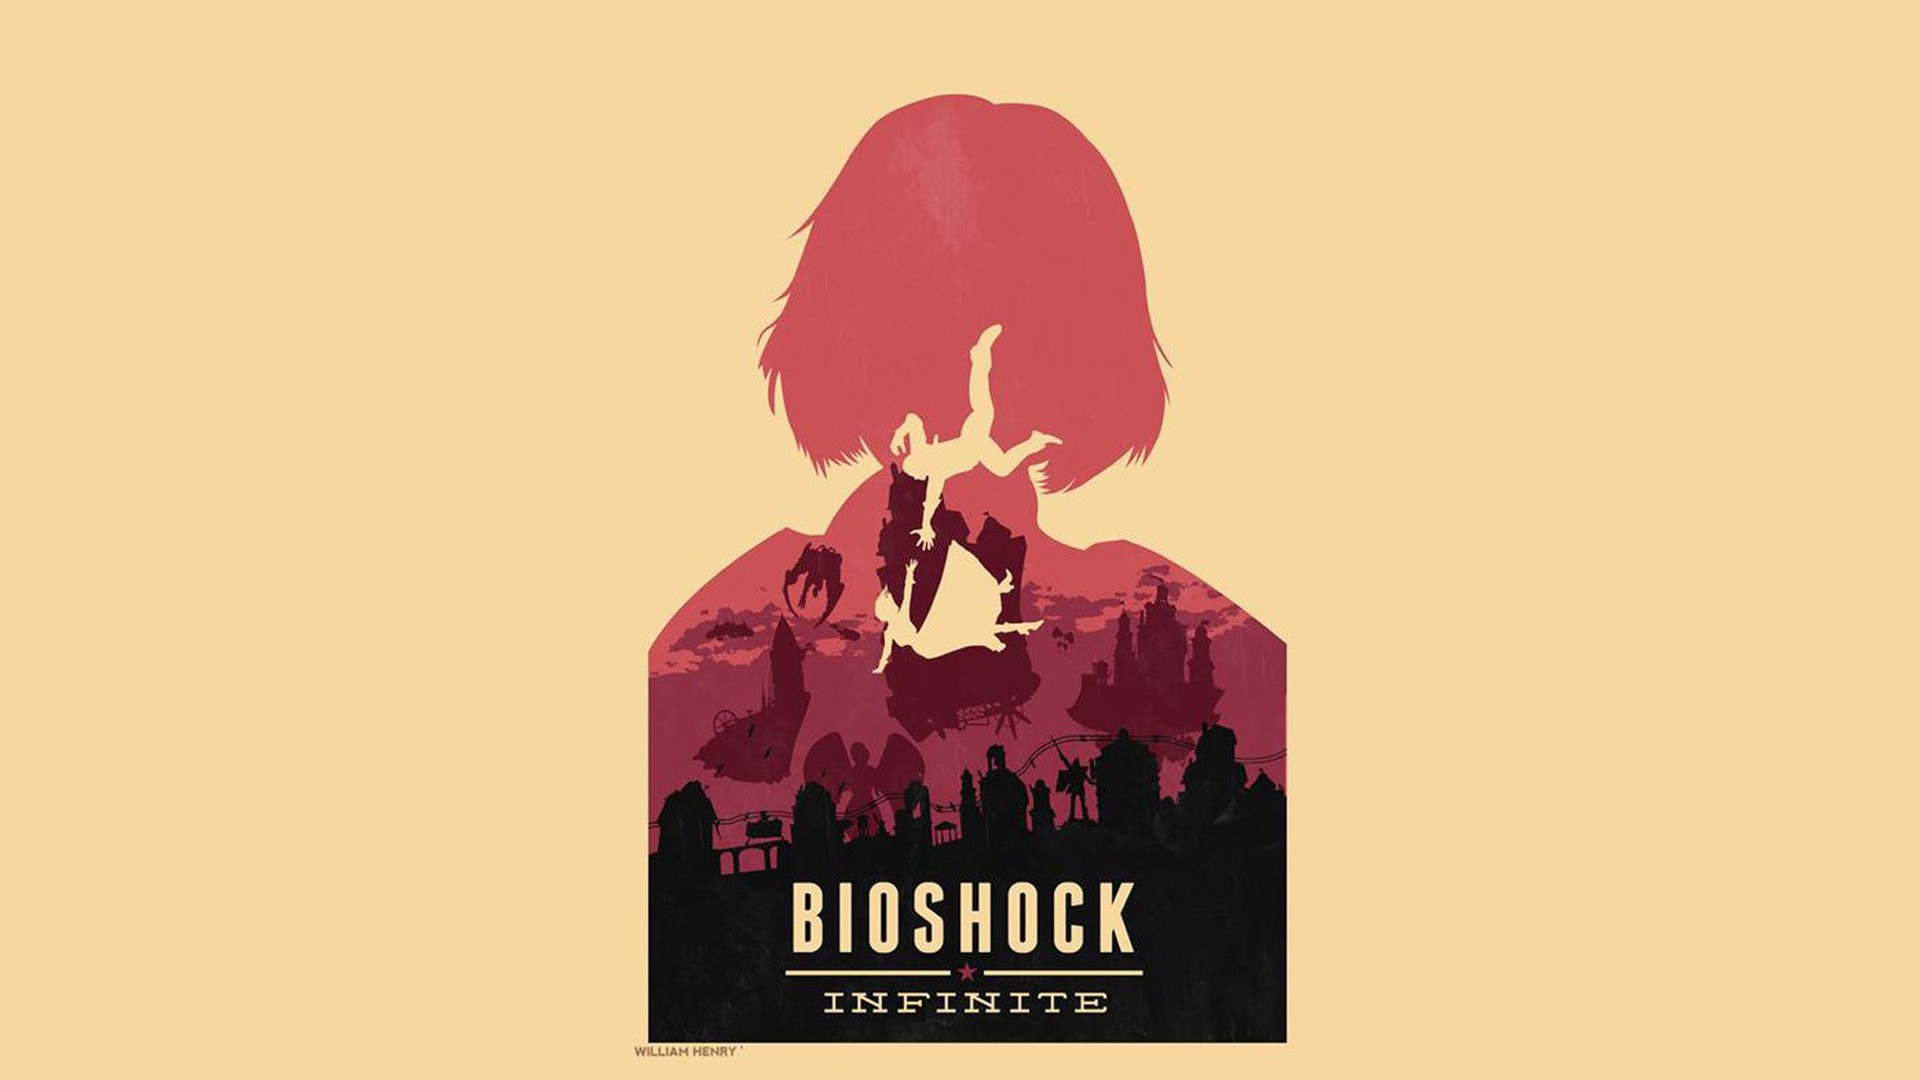 Bioshock Infinite Full HD Wallpaper And Background Image